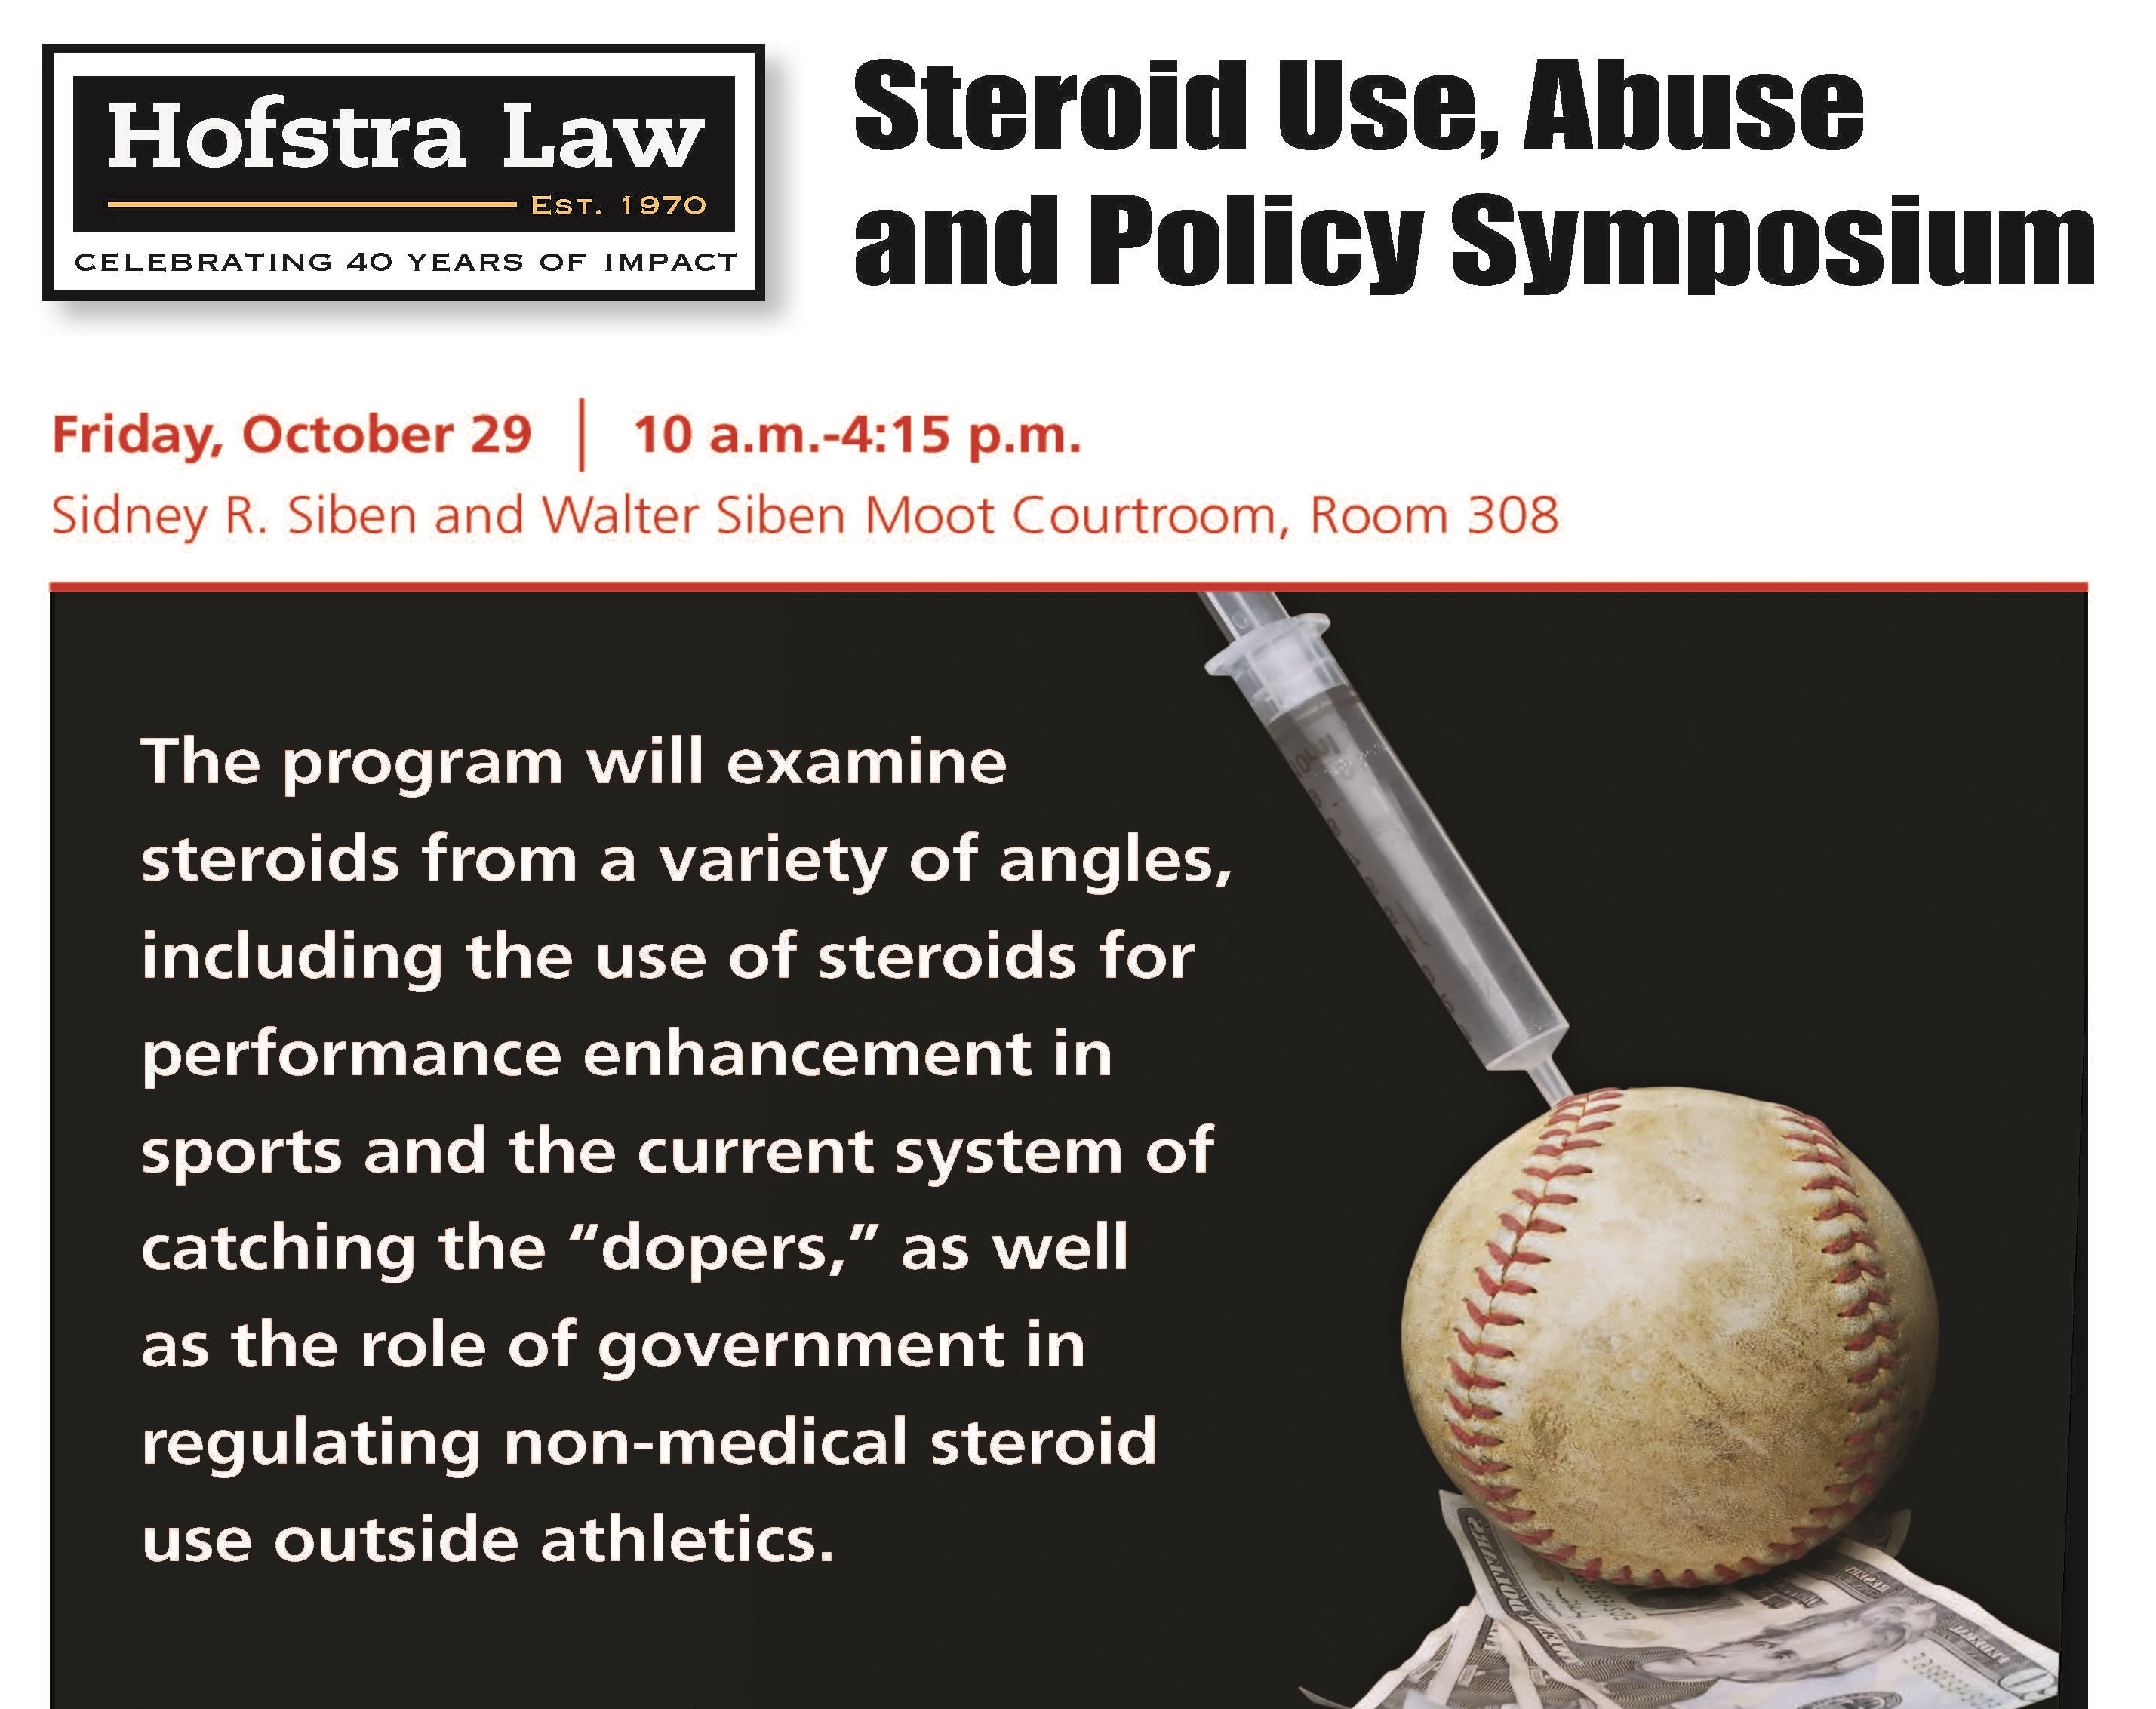 Steroid Use, Abuse and Policy Symposium (2010)